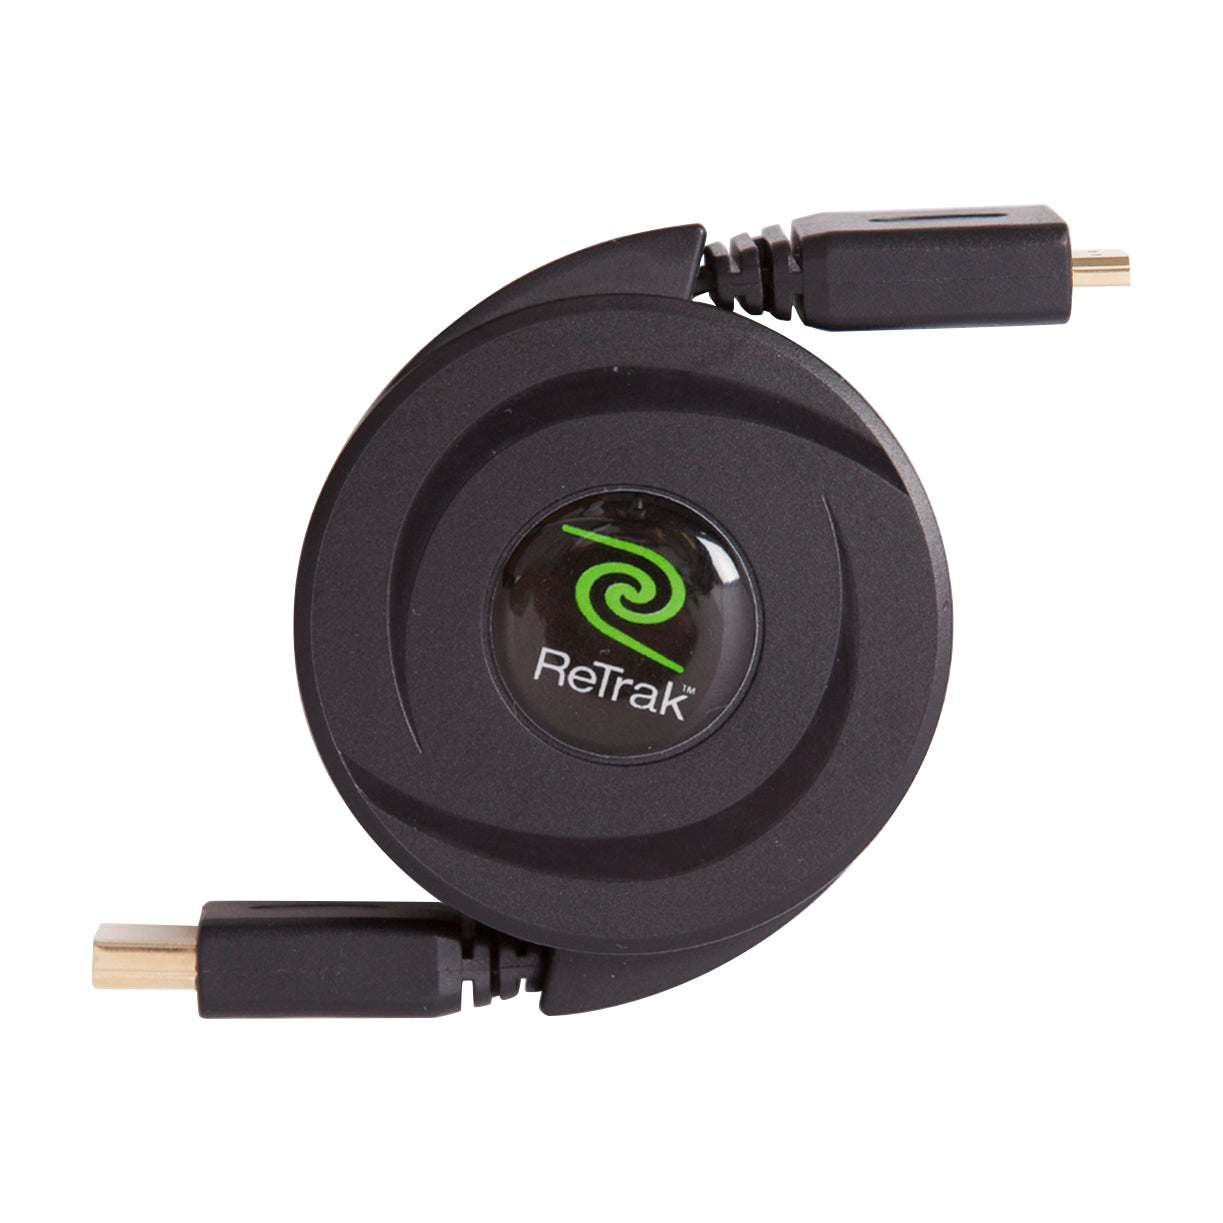 HDMI to Micro HDMI Cable | HDMI Type A to HDMI Type D  | Retractable Cable